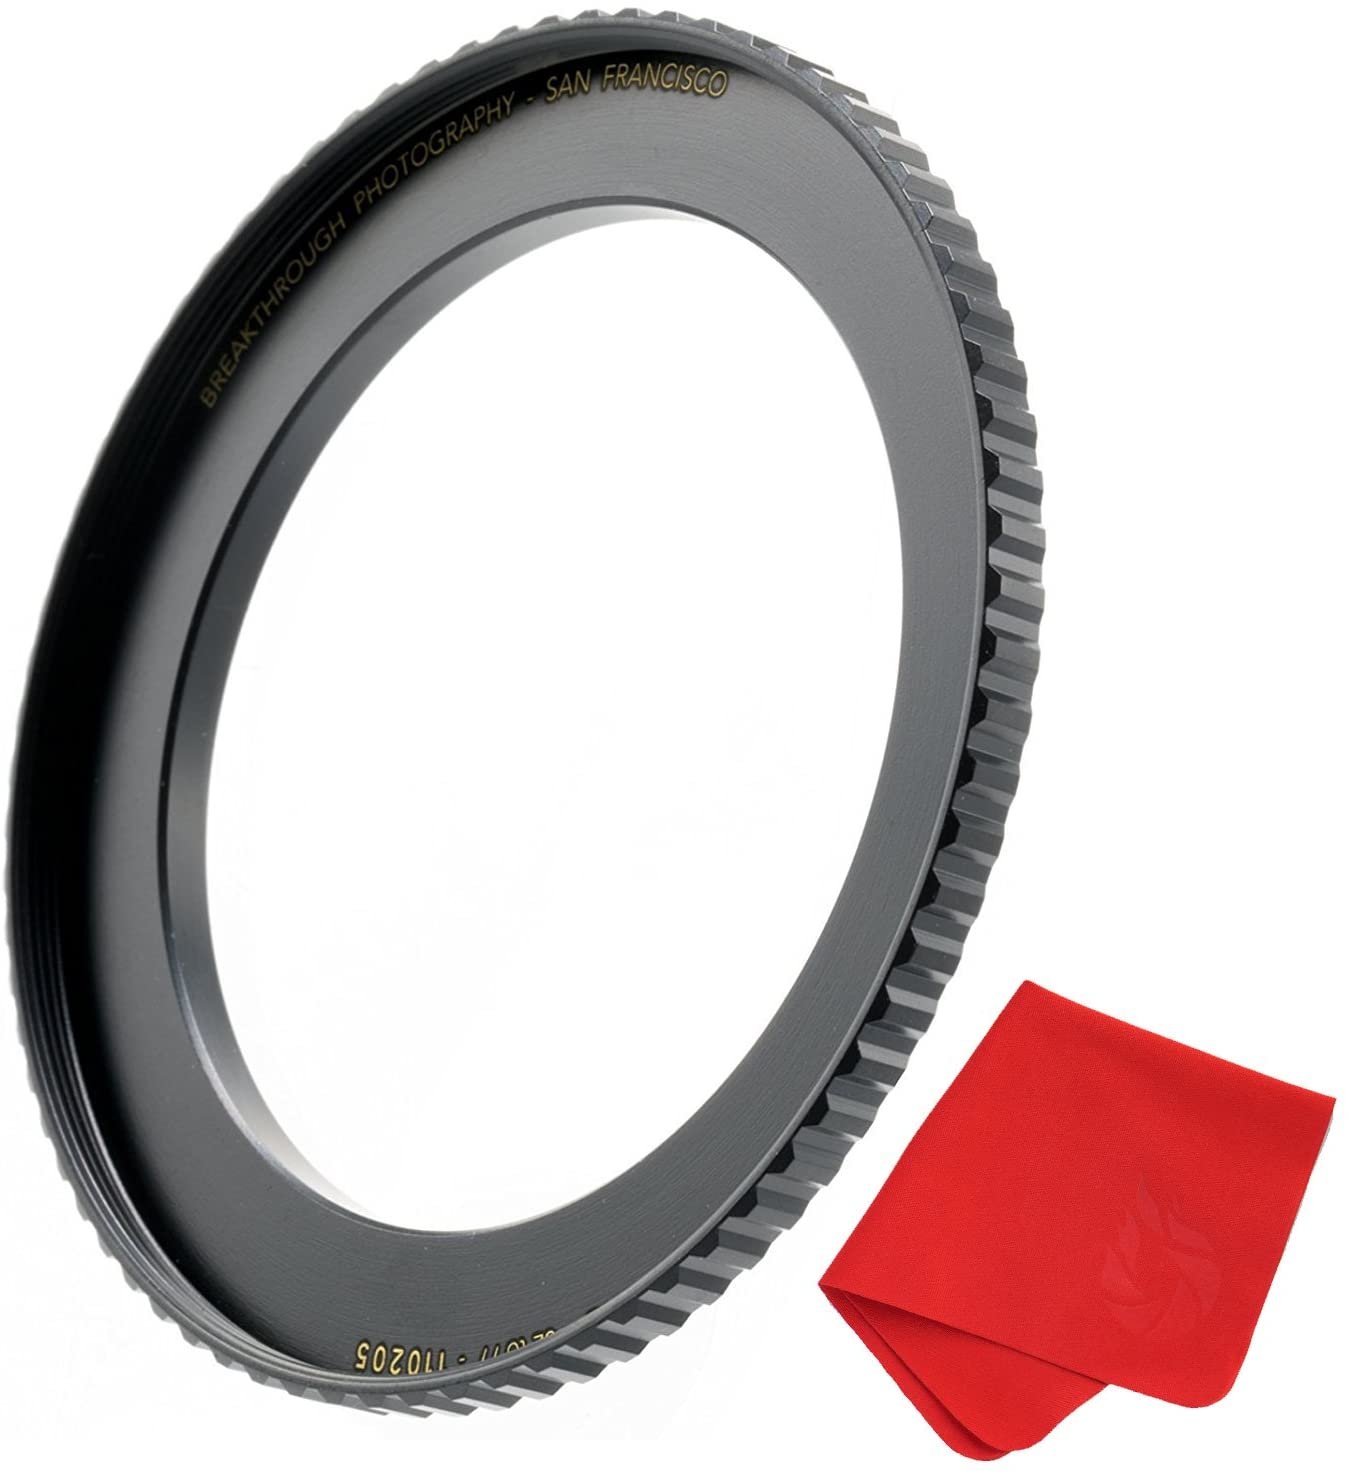 Breakthrough Photography 58mm to 67mm Step-Up Lens Adapter Ring for Filters, Made of CNC Machined Brass with Matte Black Electroplated Finish